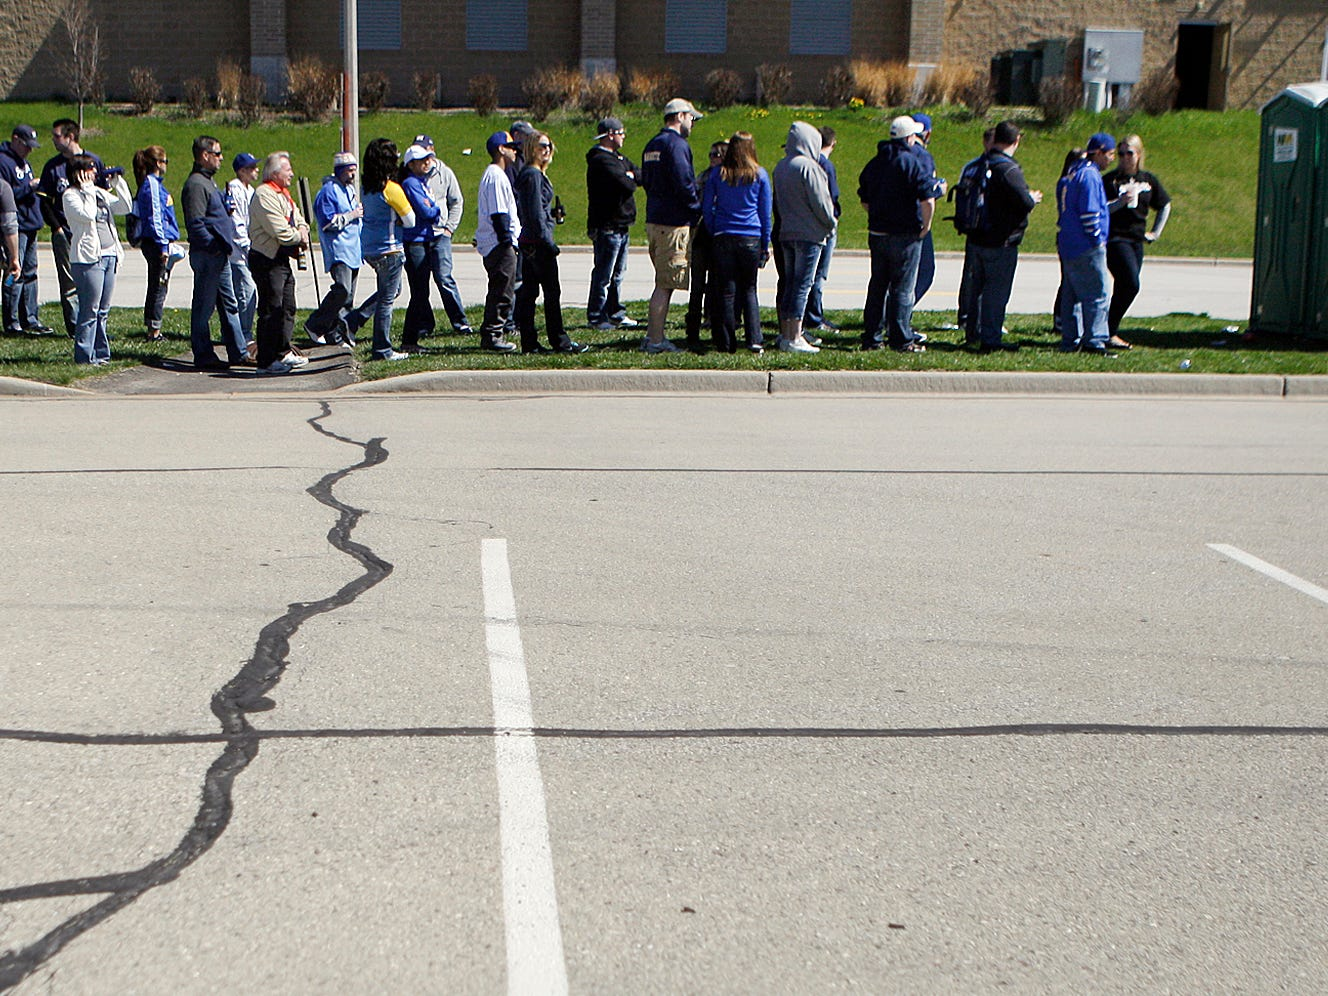 The bathroom lines grow very long for the two Porta-Potties at the back of the parking lot on opening day of the 2012 Milwaukee Brewers season, April 6, 2012. In the game inside Miller Park, the Brewers lost to the St. Louis Cardinals, 11-5.